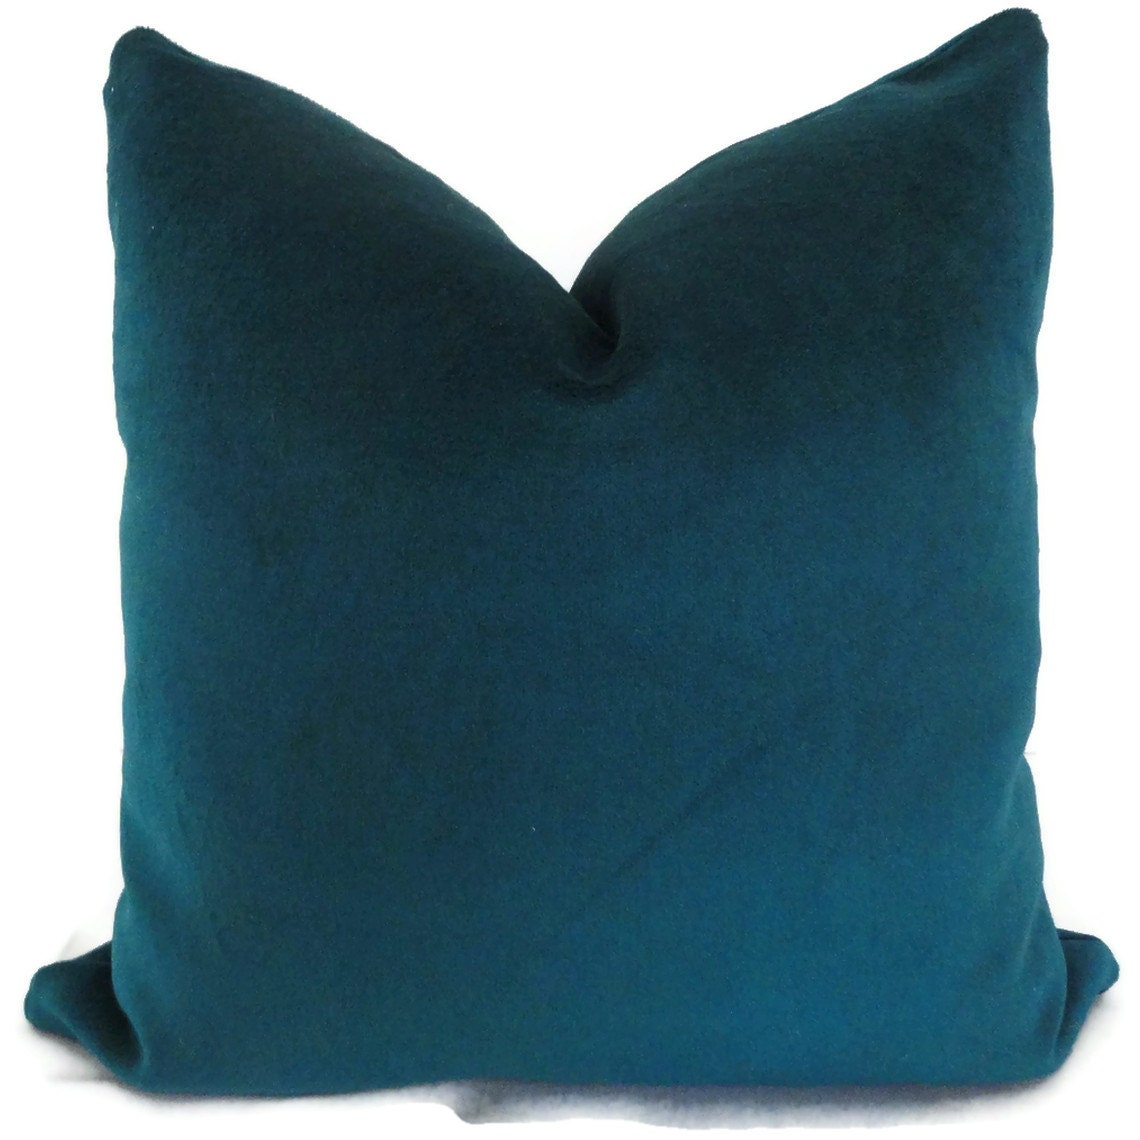 Velvet Peacock Blue Decorative Pillow Cover 18x18 by PopOColor